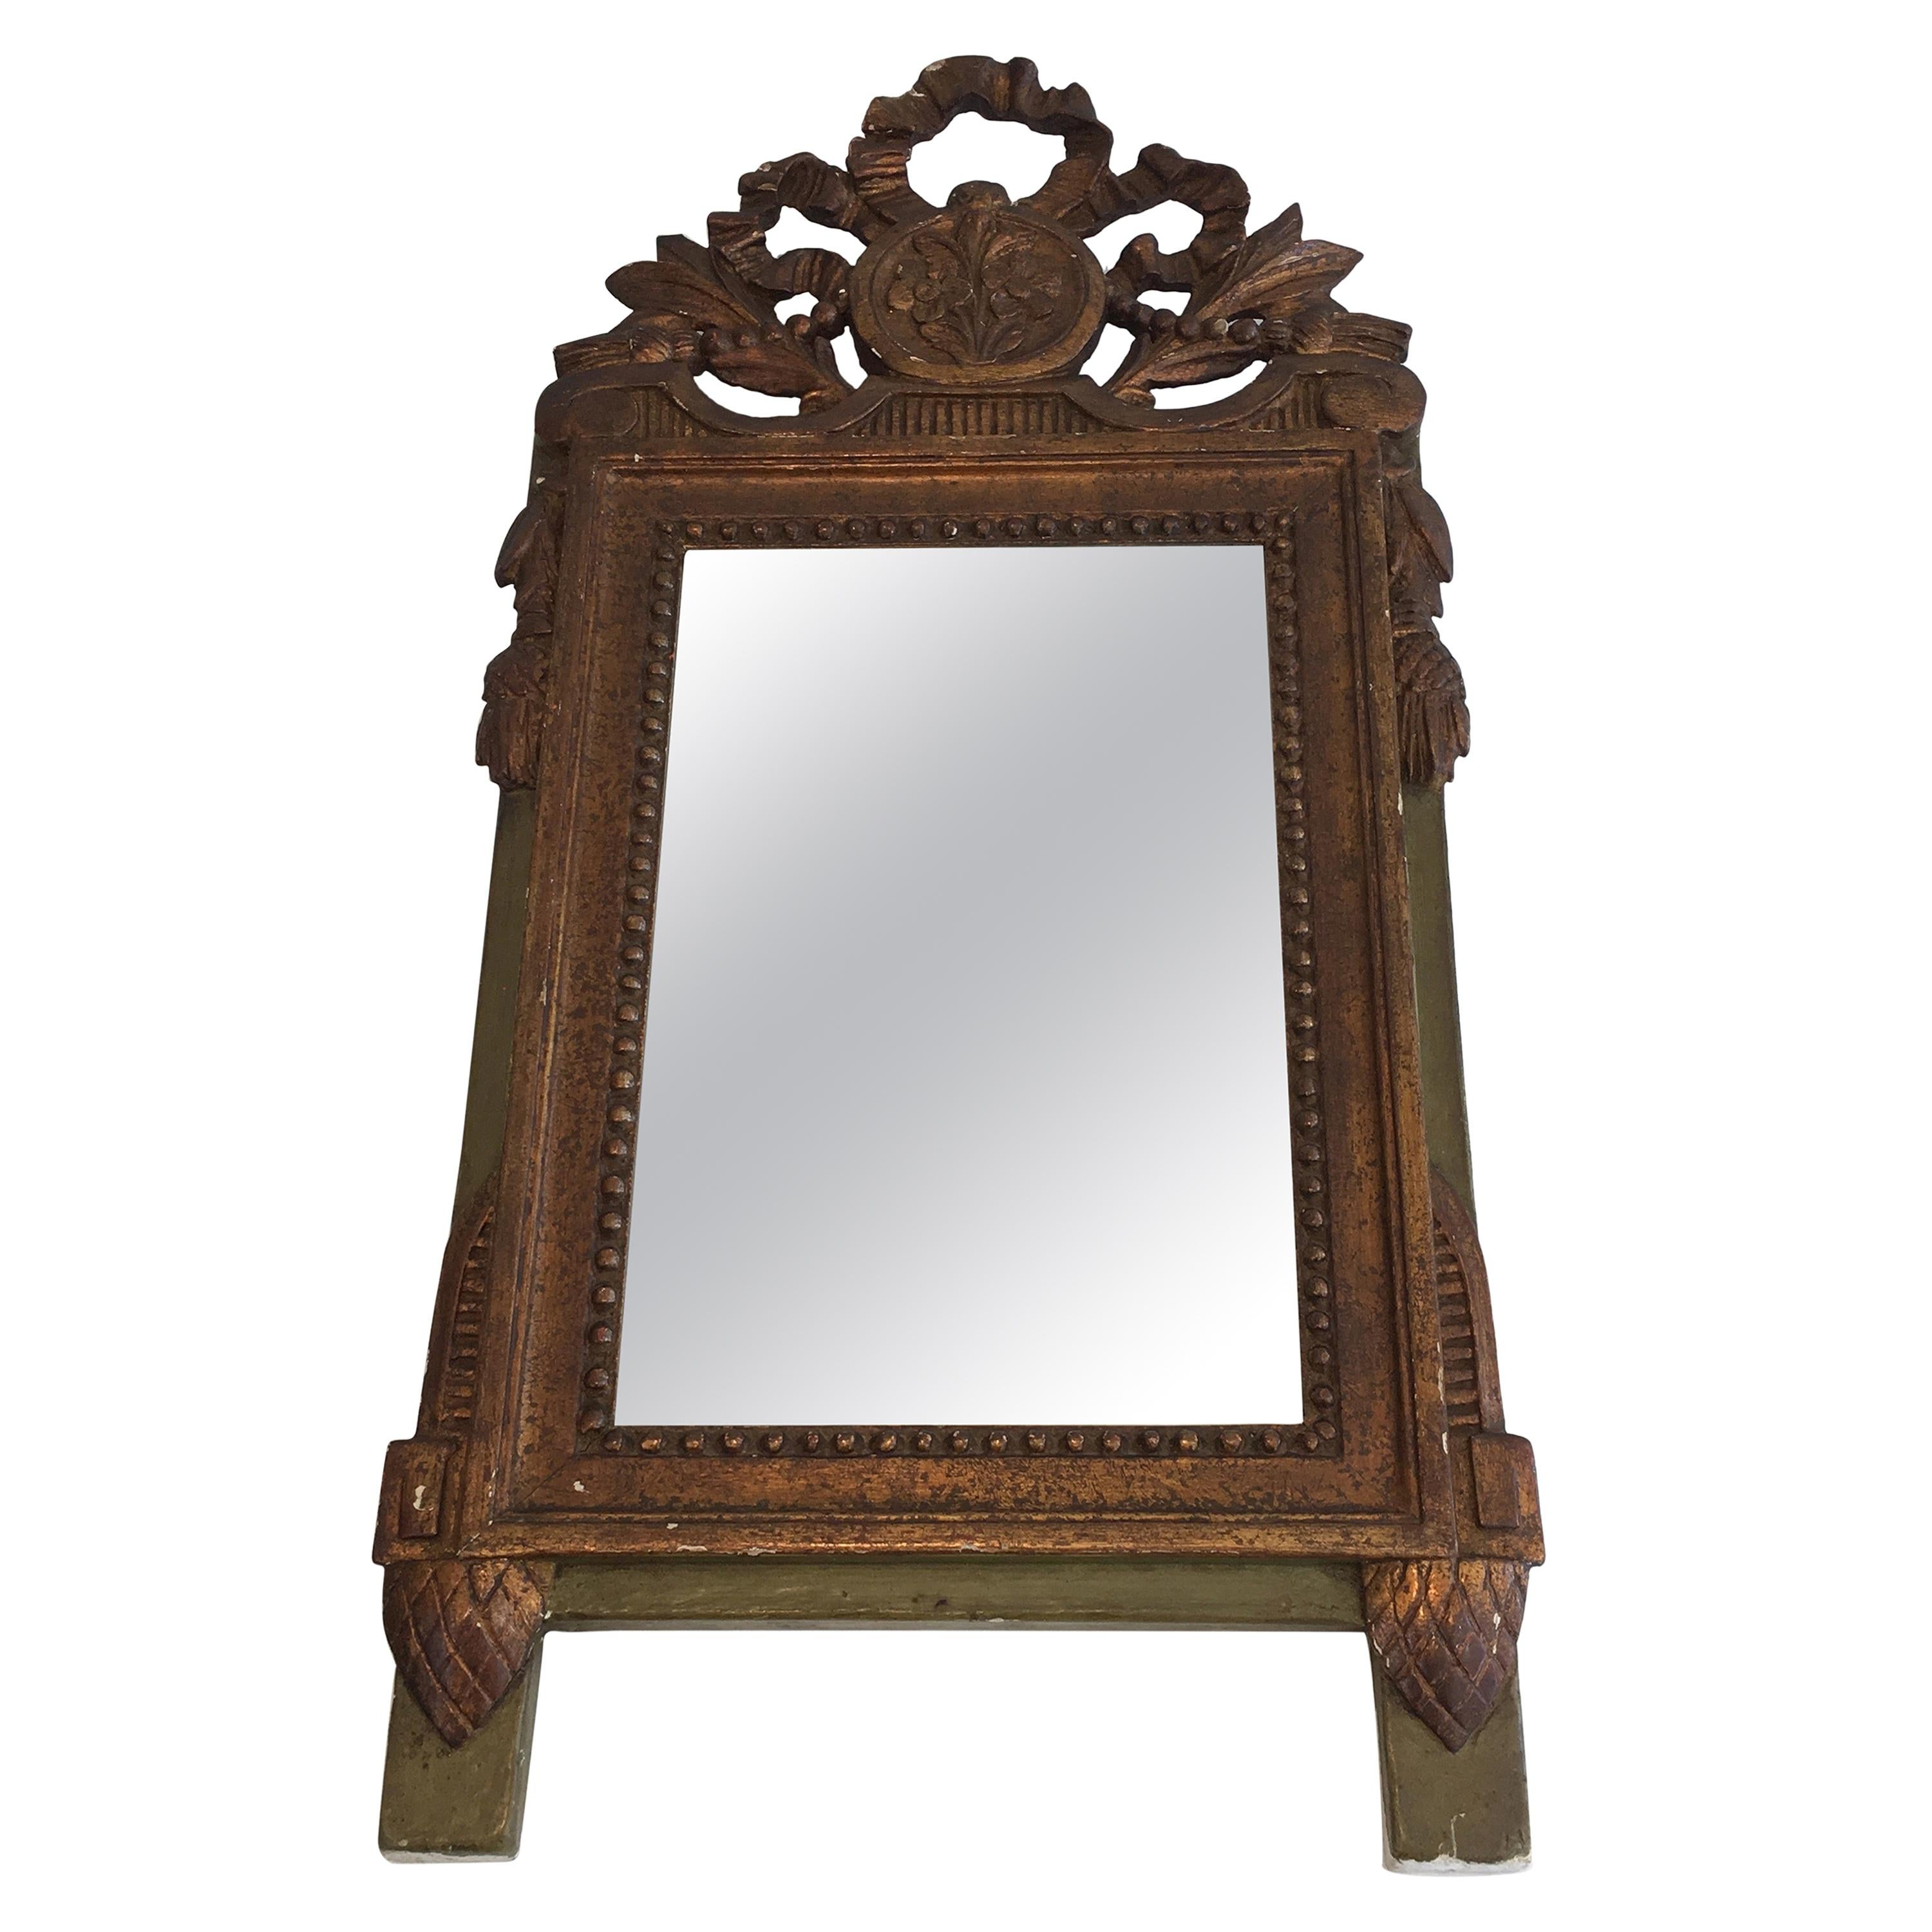 Louis the xvi Style Gilt and Painted Wood Mirror, French, 19th Century